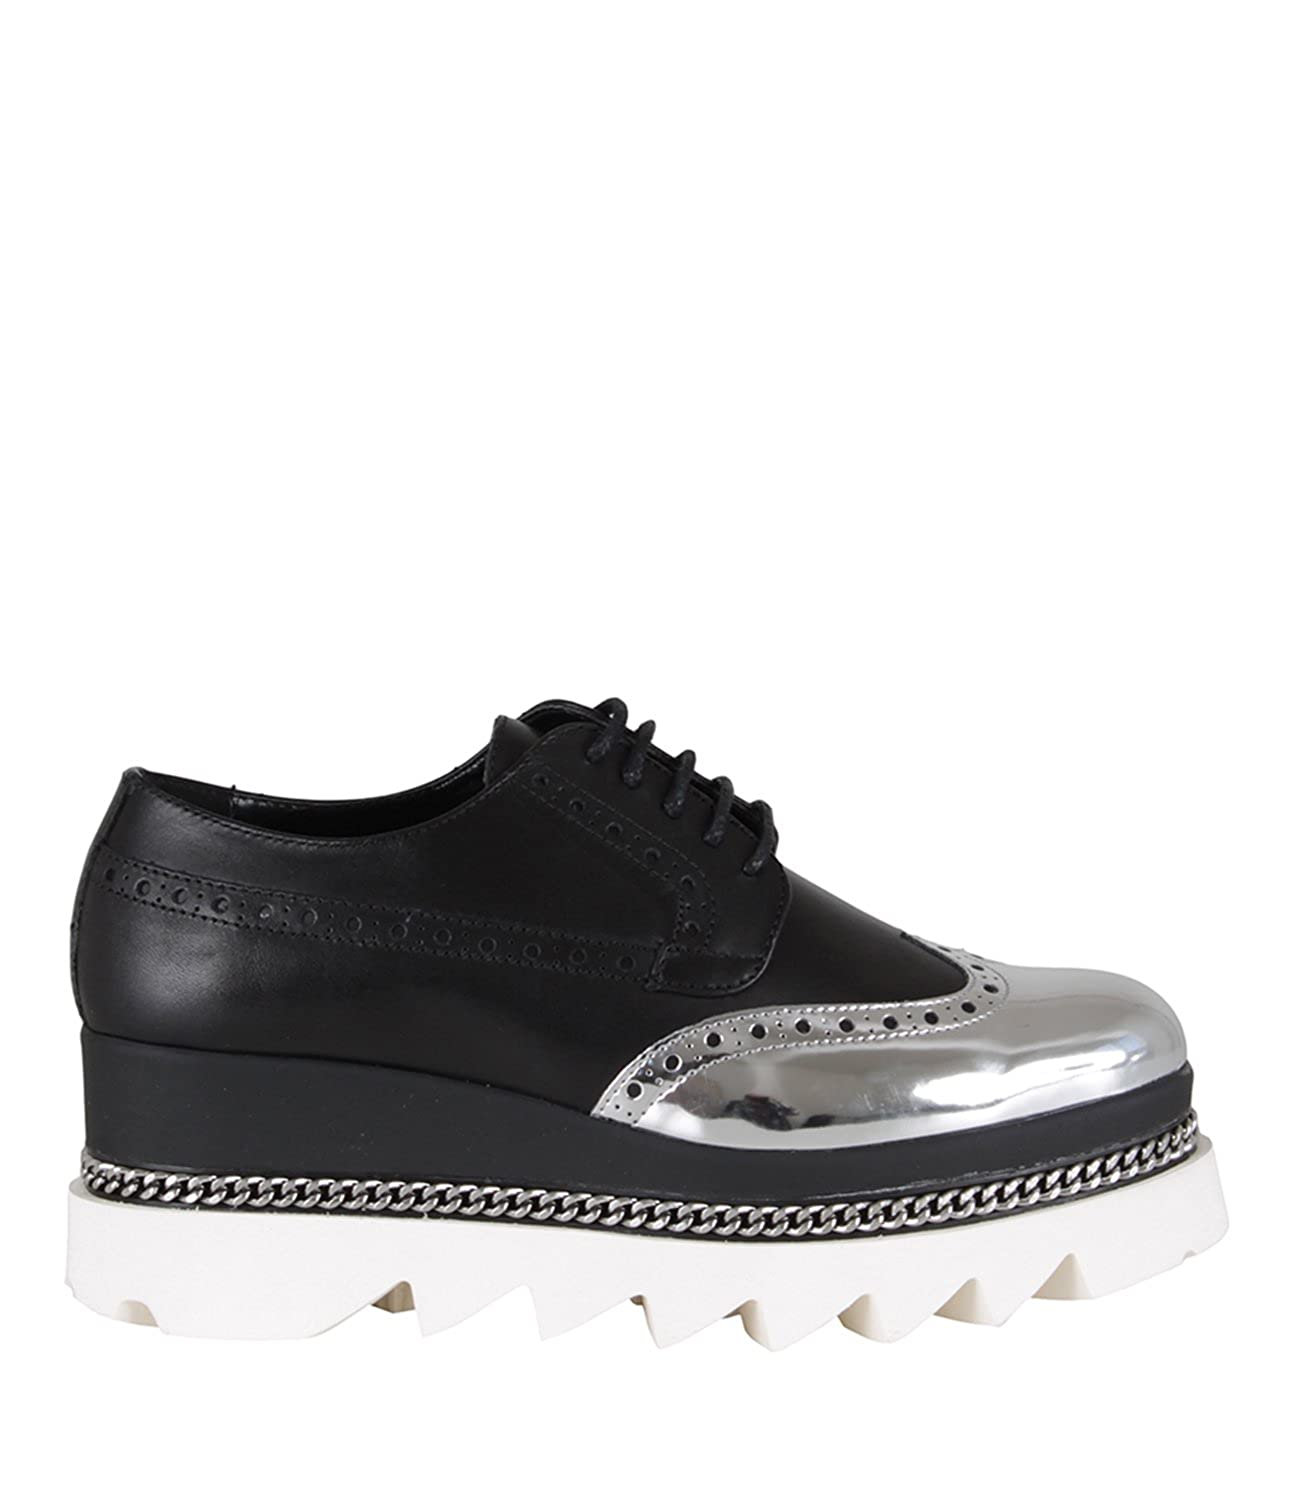 Cult Scarpa Donna Donna Scarpa Alice Low 1136 Low Mod. - CLE102863 - 29cc75c - fast-weightloss-diet.space